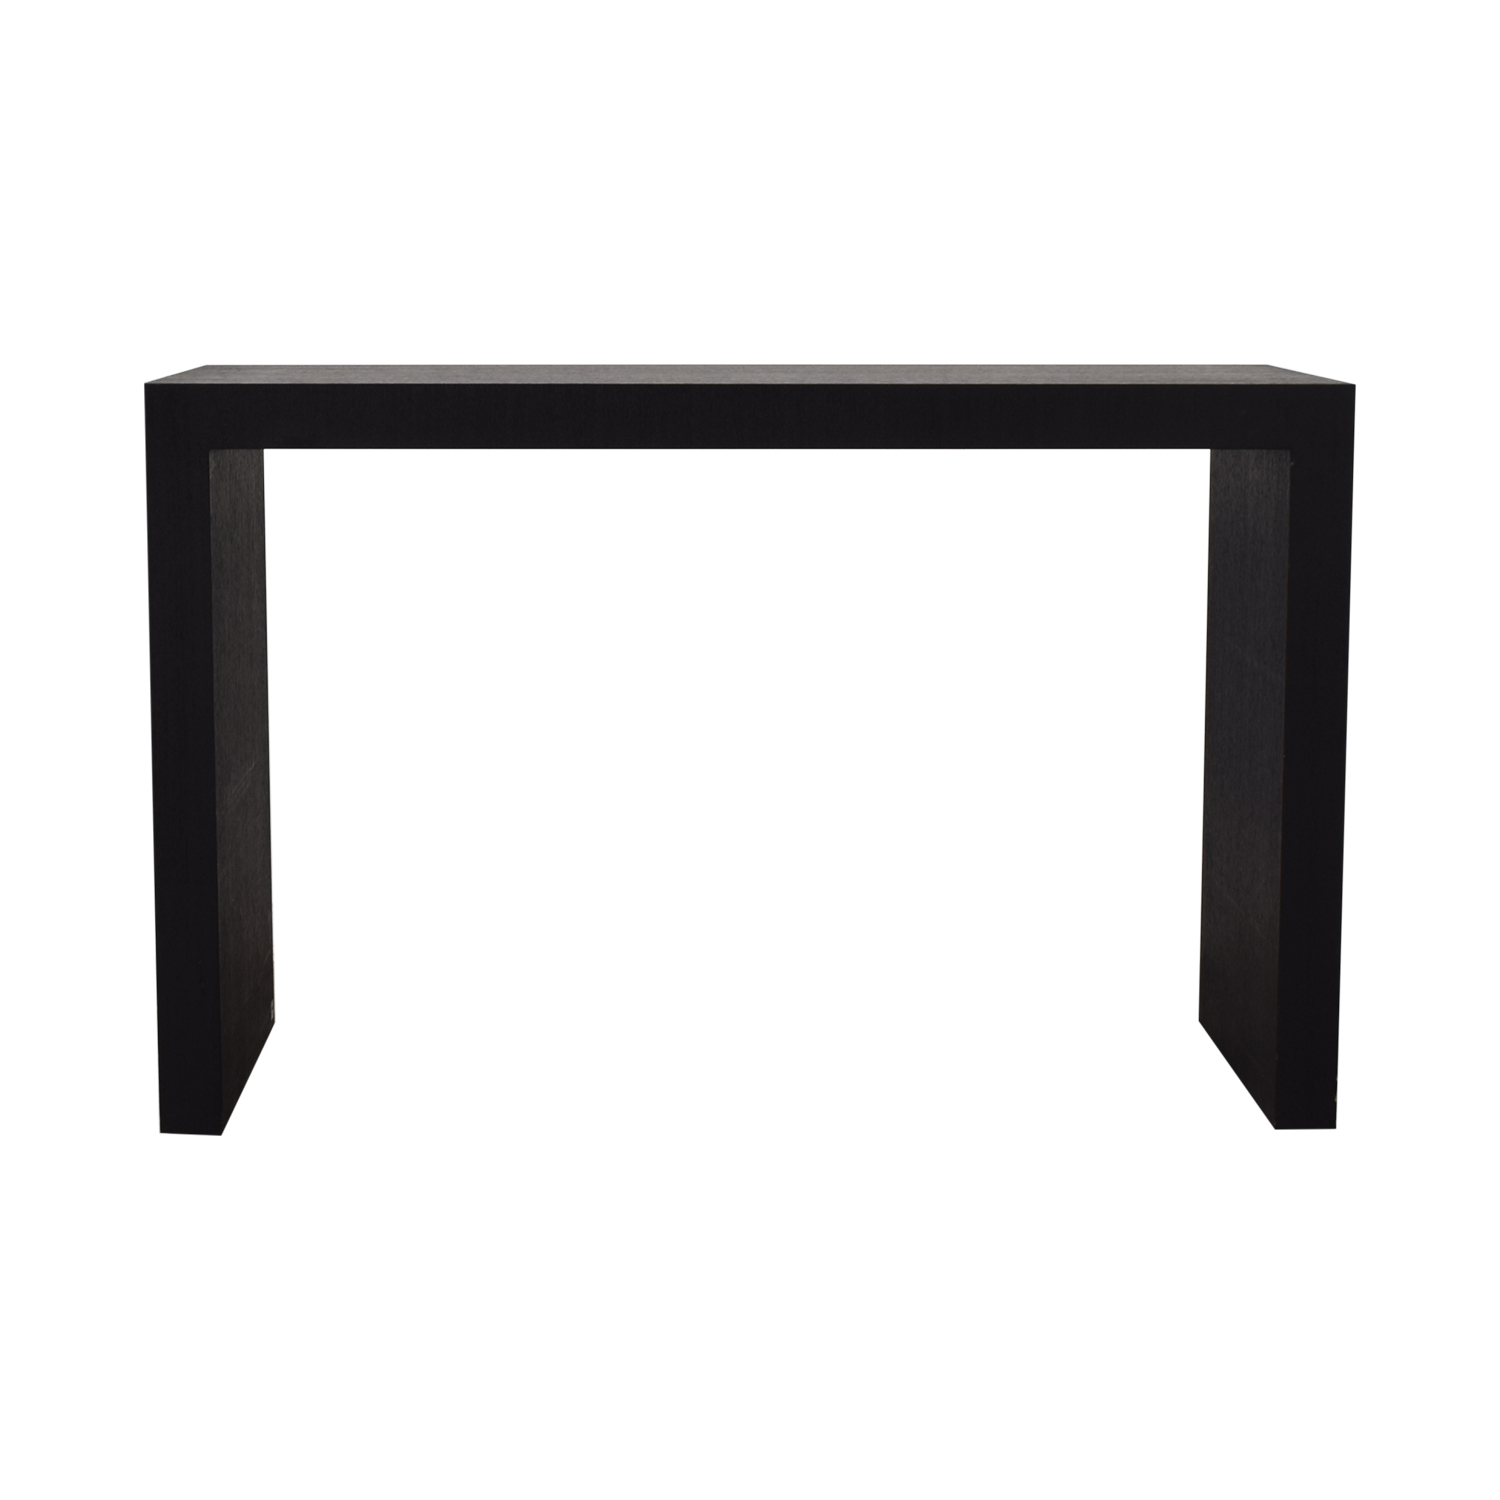 shop Armani Casa Seine Console Table Armani Casa Tables